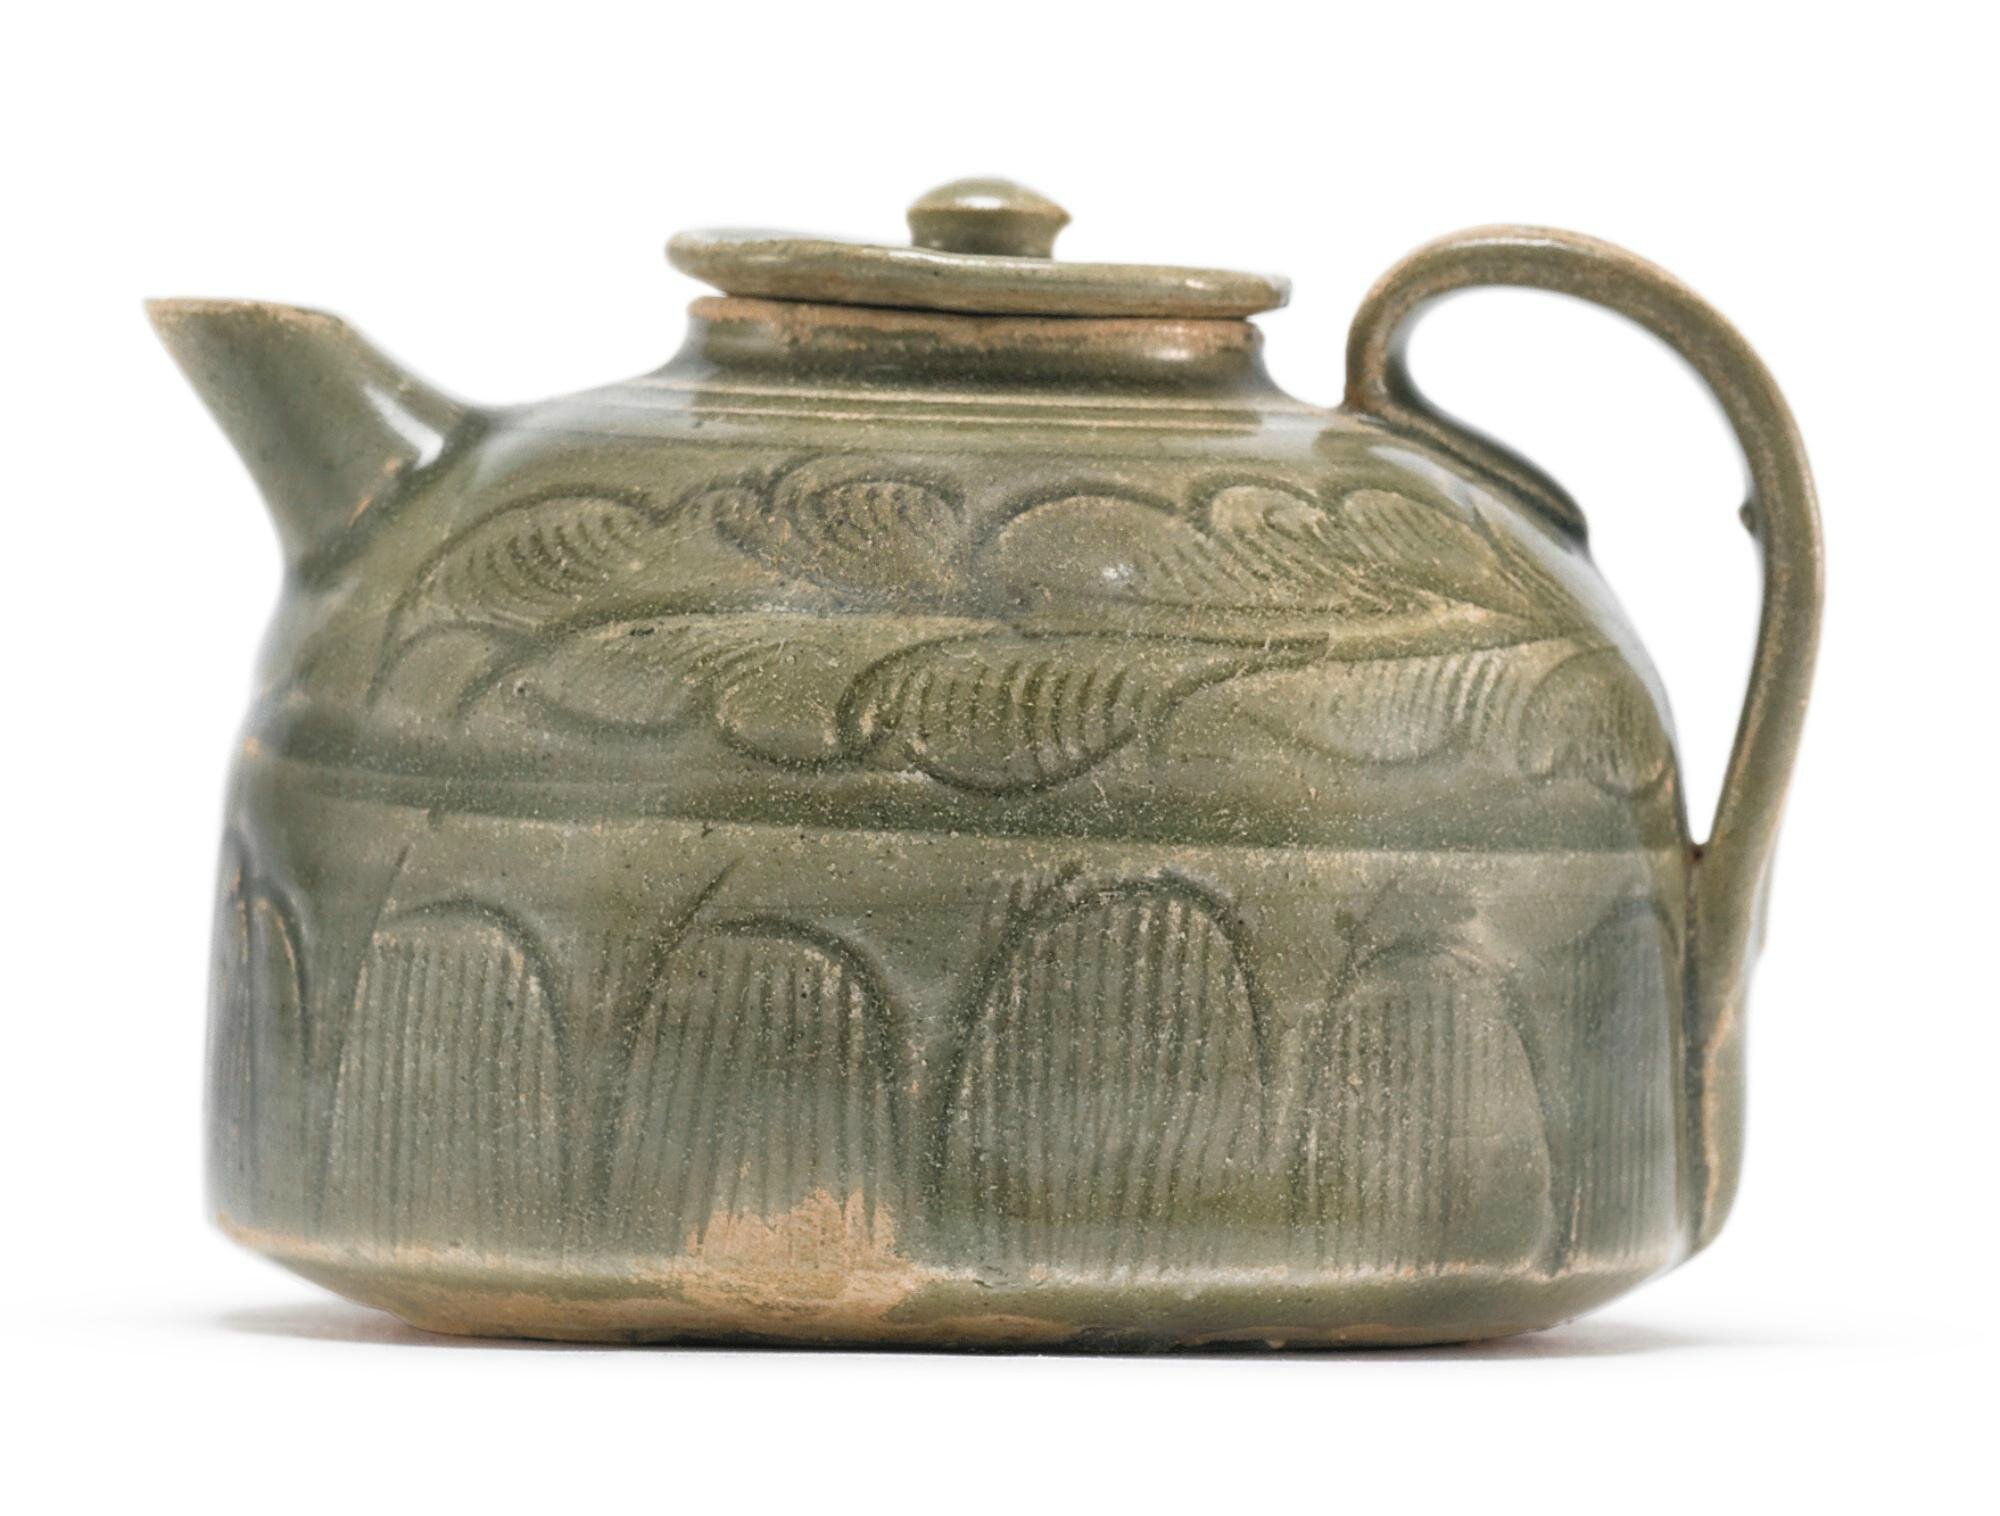 A Zhejiang celadon-glazed ewer and cover, Northern Song dynasty